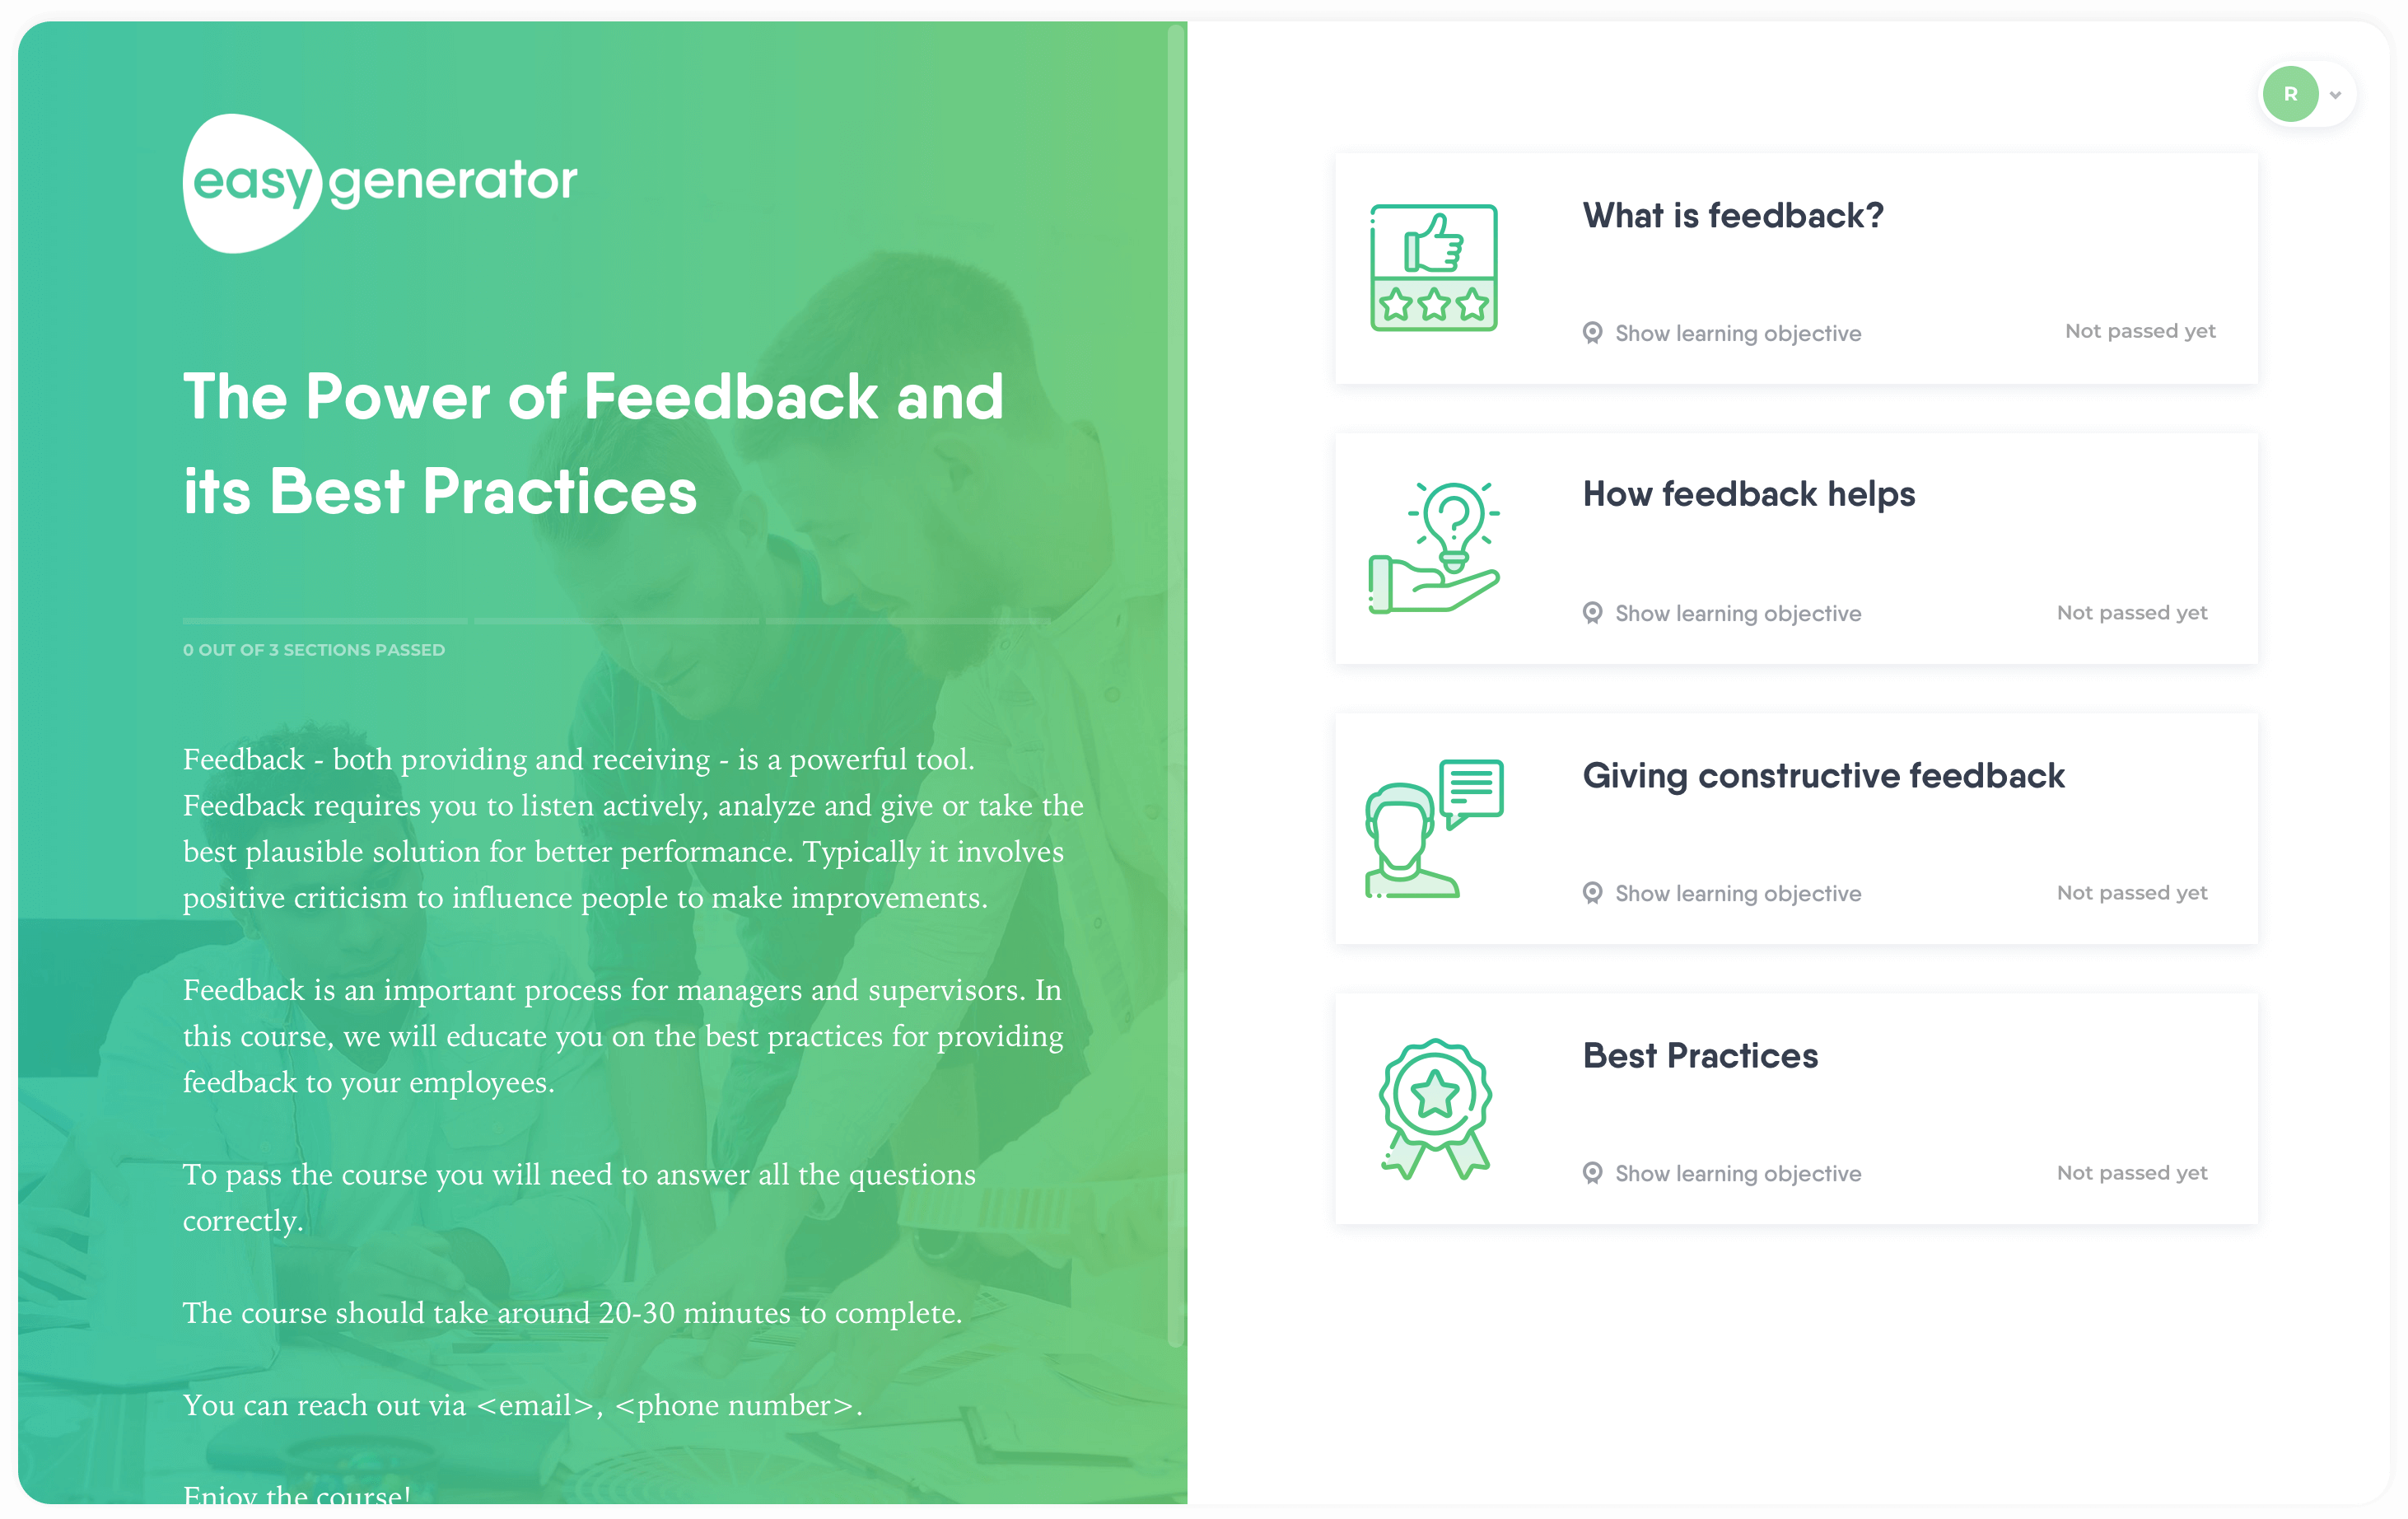 Training template for giving constructive feedback